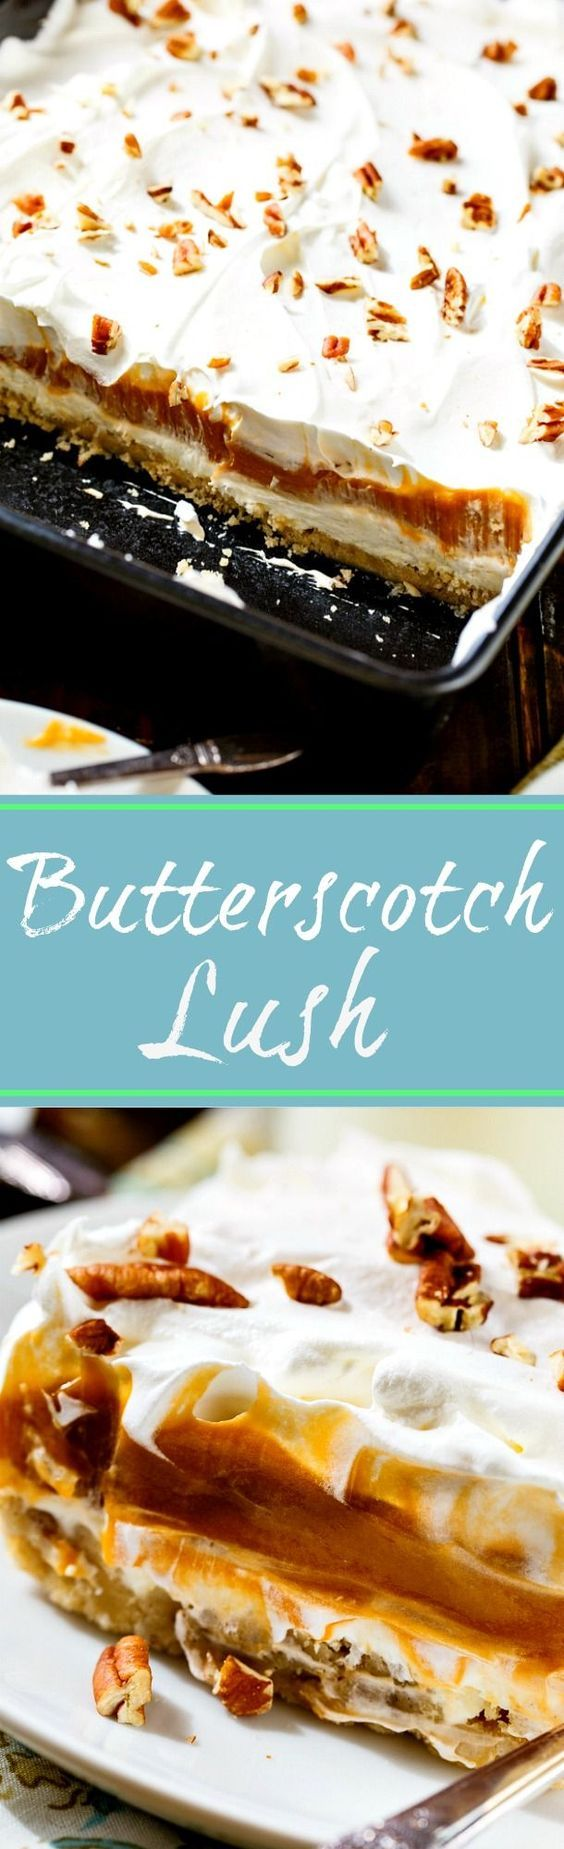 Butterscotch Lush with a buttery crust made from Pecan Sandies cookie crumbs.